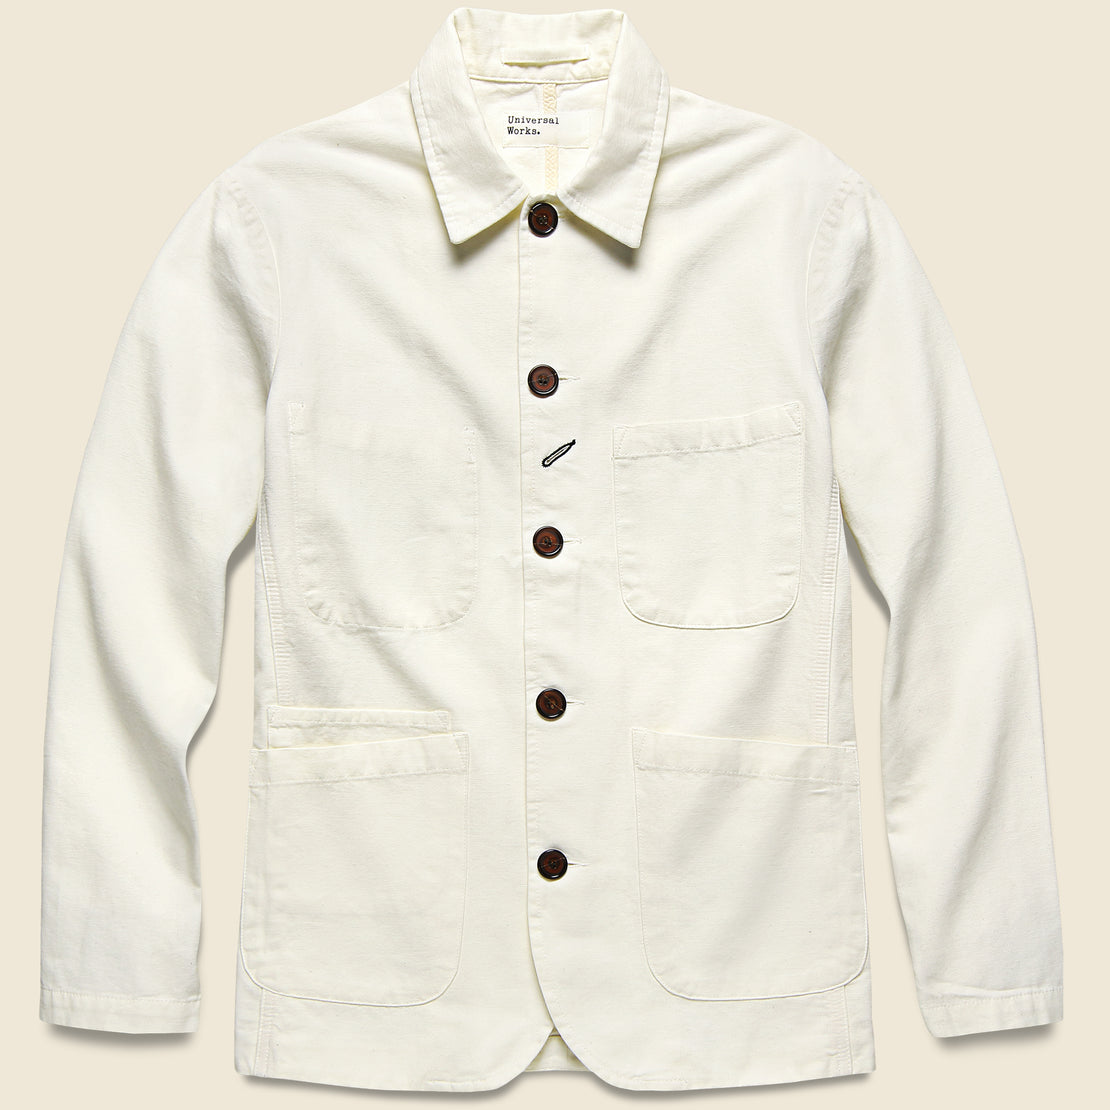 Universal Works Bakers Jacket - Ecru